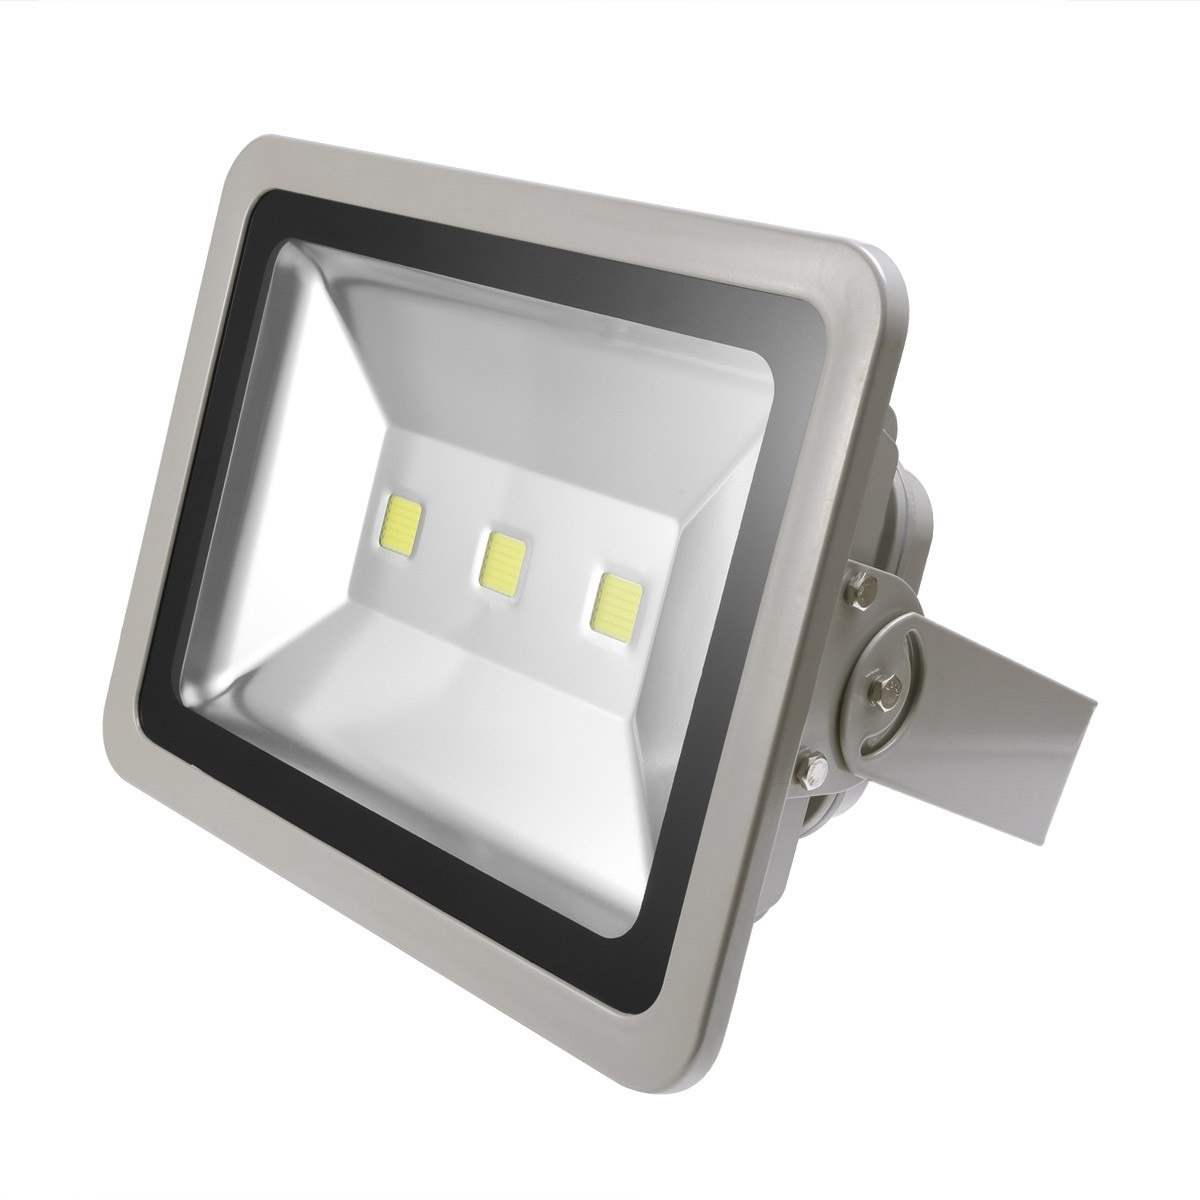 [%Led Flood Light High Power Outdoor Lfl19 150W  240W [Lfl19] : Led Pertaining To Famous Outdoor Ceiling Flood Lights|Outdoor Ceiling Flood Lights Regarding 2019 Led Flood Light High Power Outdoor Lfl19 150W  240W [Lfl19] : Led|2018 Outdoor Ceiling Flood Lights For Led Flood Light High Power Outdoor Lfl19 150W  240W [Lfl19] : Led|Fashionable Led Flood Light High Power Outdoor Lfl19 150W  240W [Lfl19] : Led Pertaining To Outdoor Ceiling Flood Lights%] (View 1 of 20)